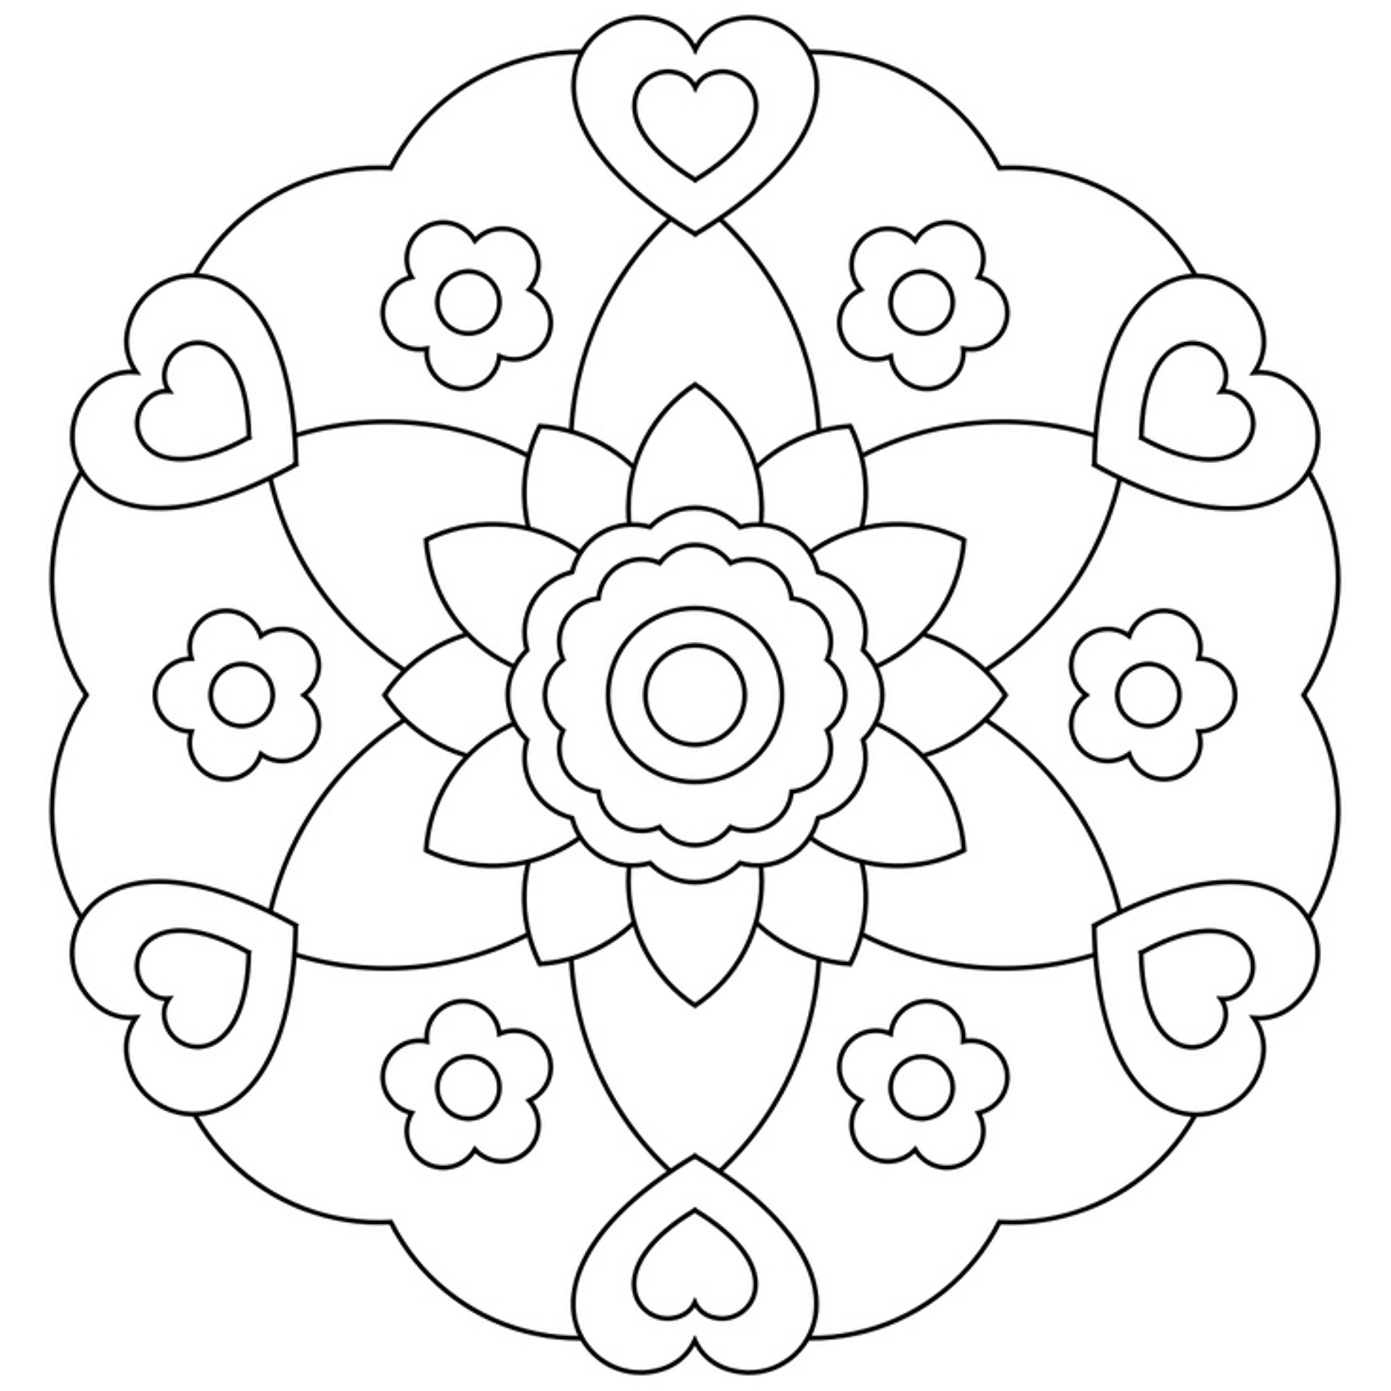 free design coloring pages best free easy flower mandala designs coloring pages pages coloring free design